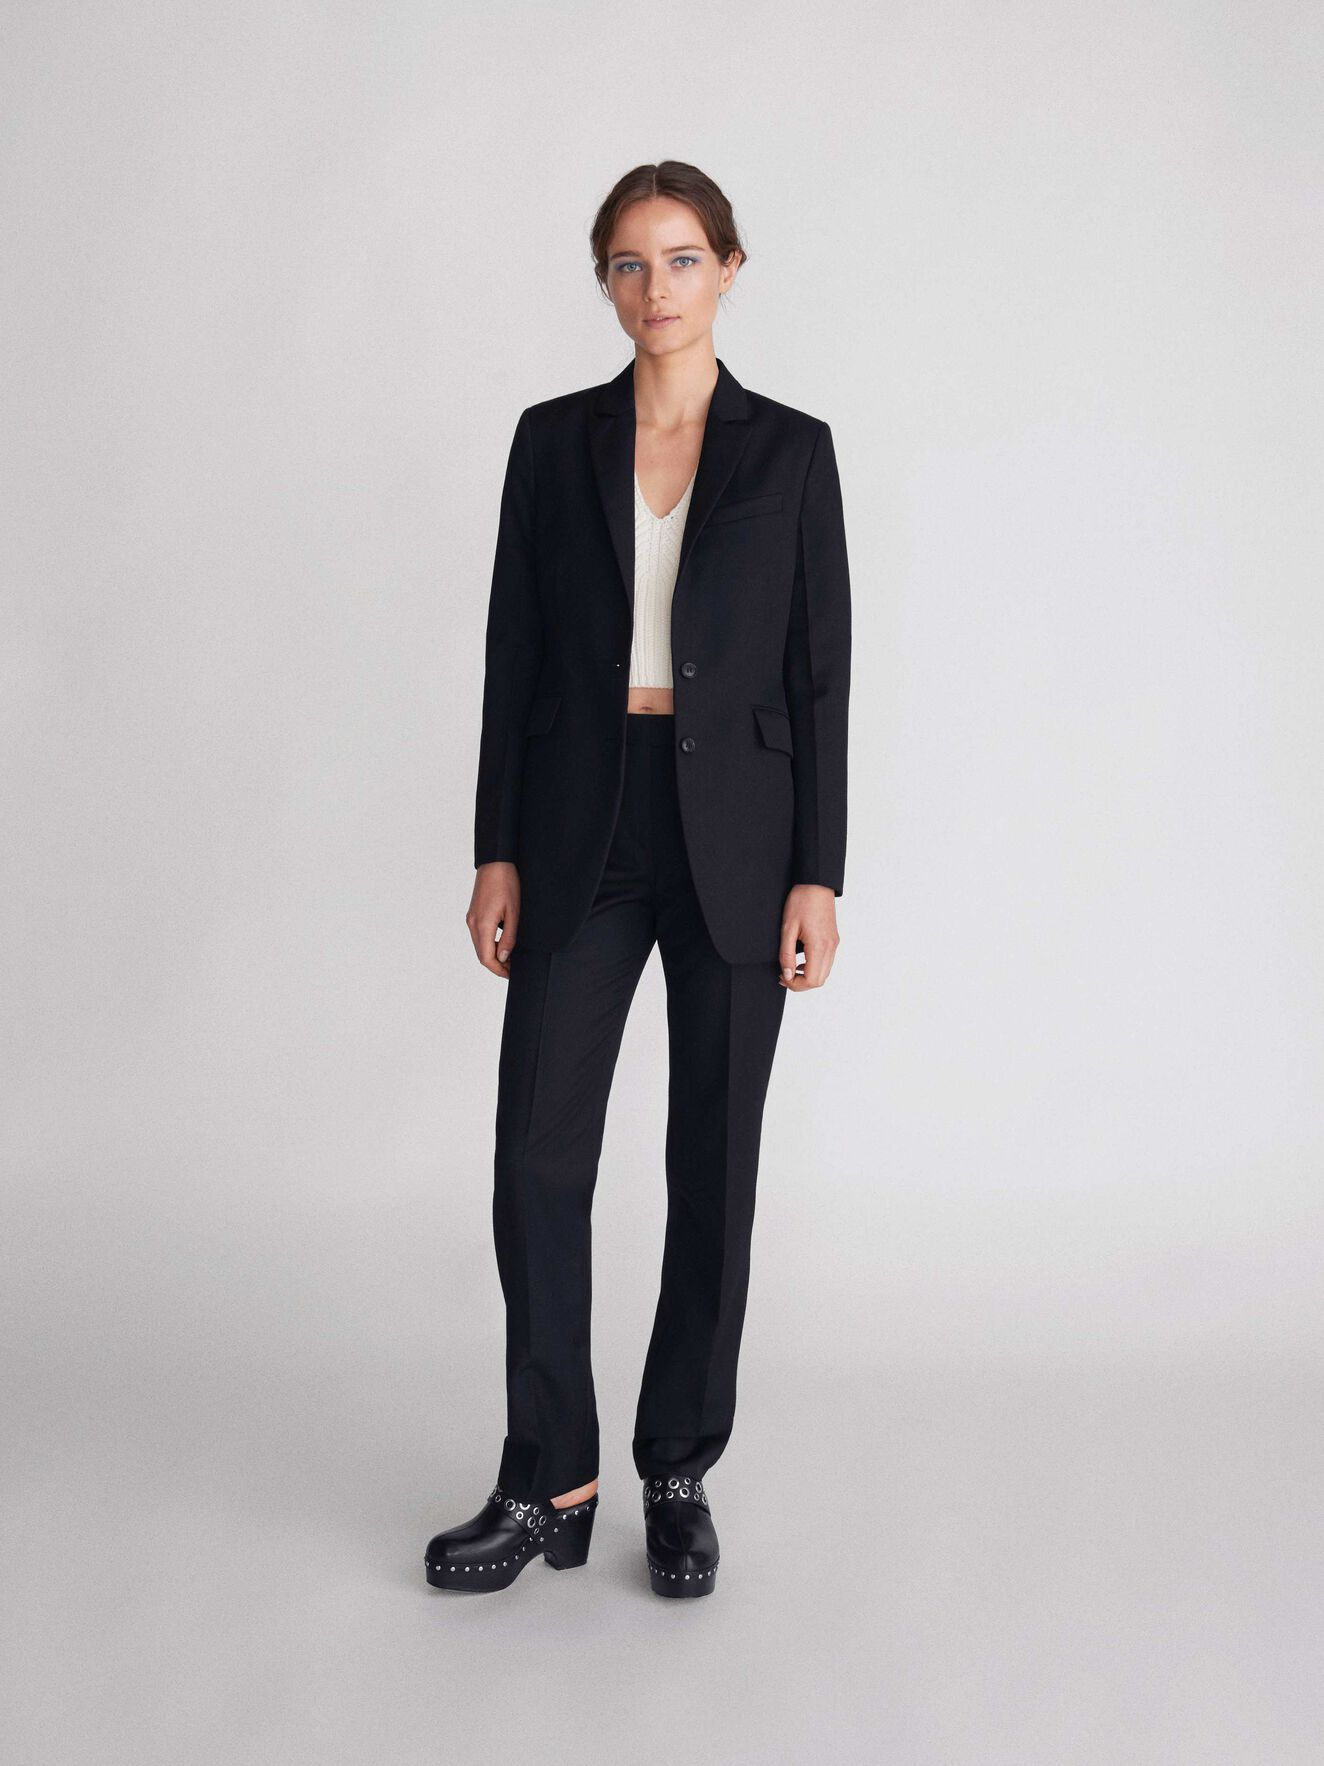 Tomiko Trousers in Black from Tiger of Sweden